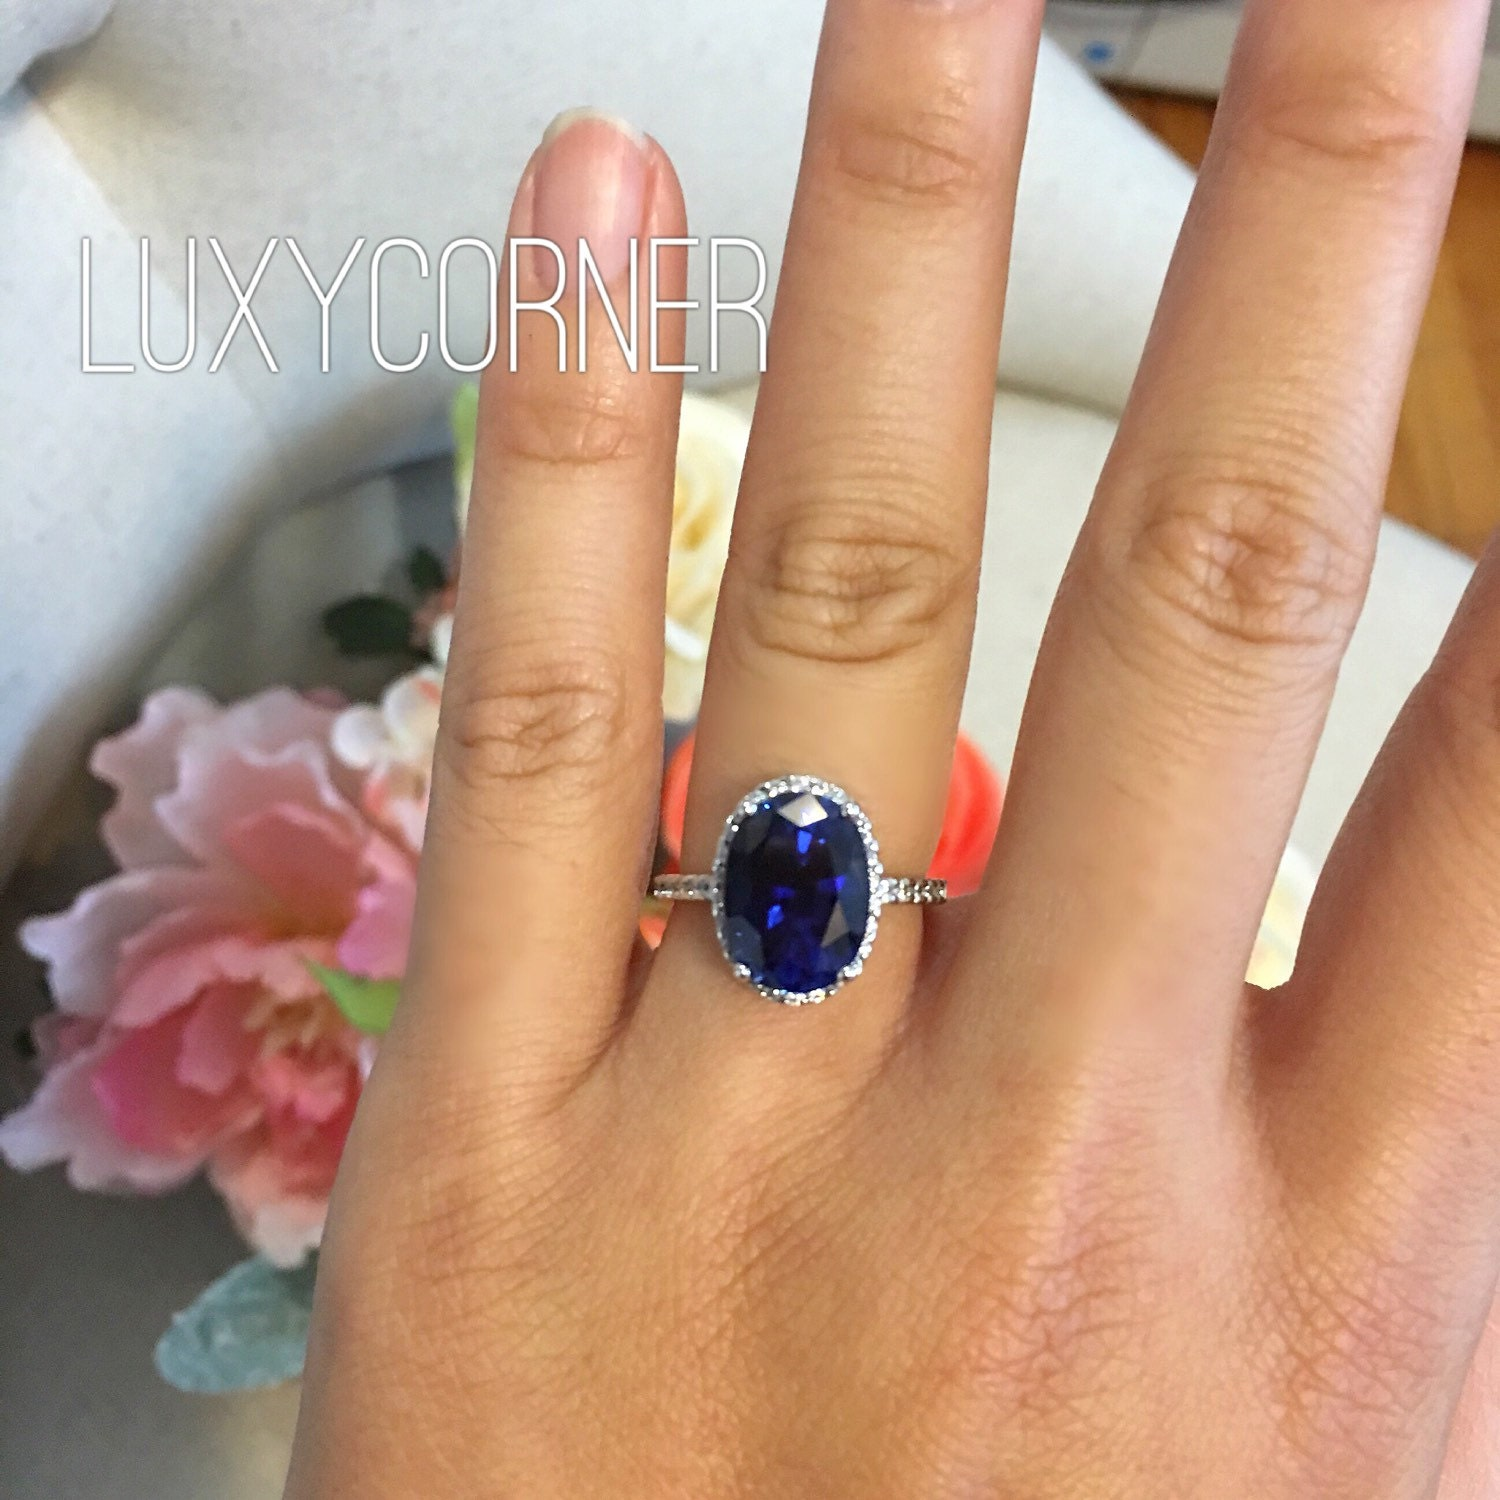 oval halo promise engagement sapphire ring flawless diamond listing art au fullxfull carat wedding deco vintage square round lab rings zoom center il